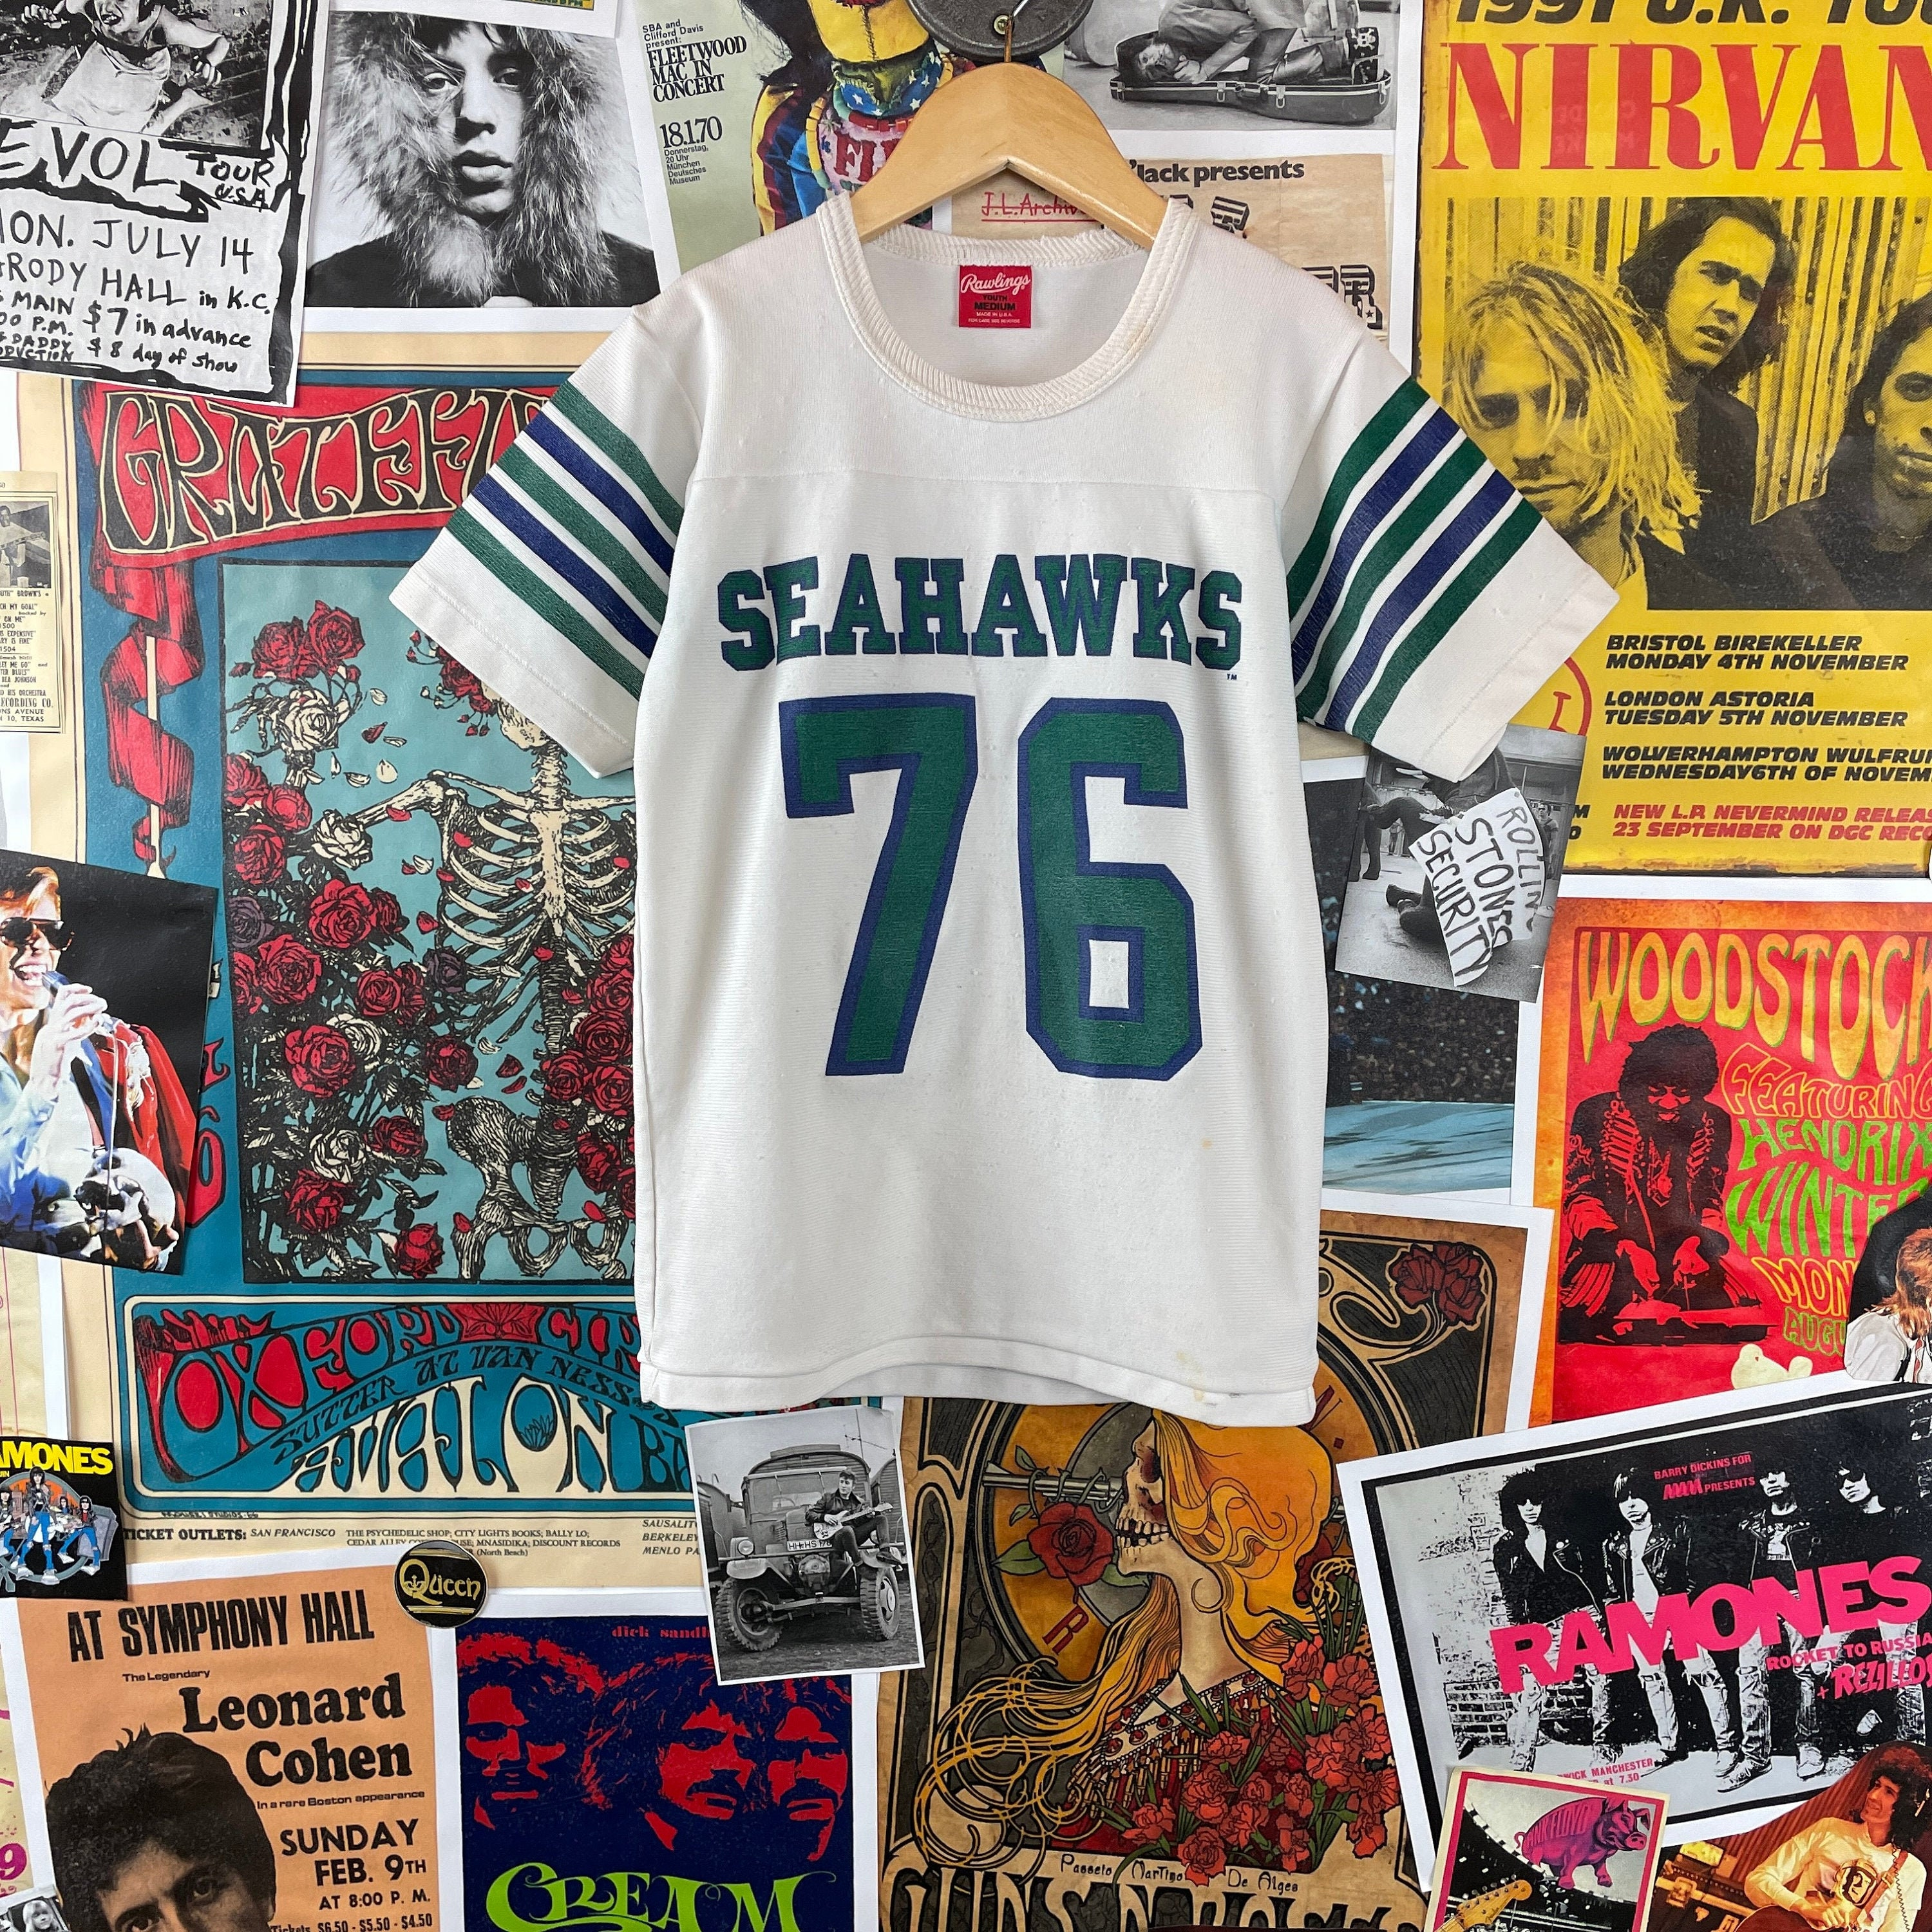 80s Tops, Shirts, T-shirts, Blouse   90s T-shirts Vintage Kids 1980S Nfl Seattle Seahawks 76 Rawlings Sportswear Jersey Shirt $25.00 AT vintagedancer.com